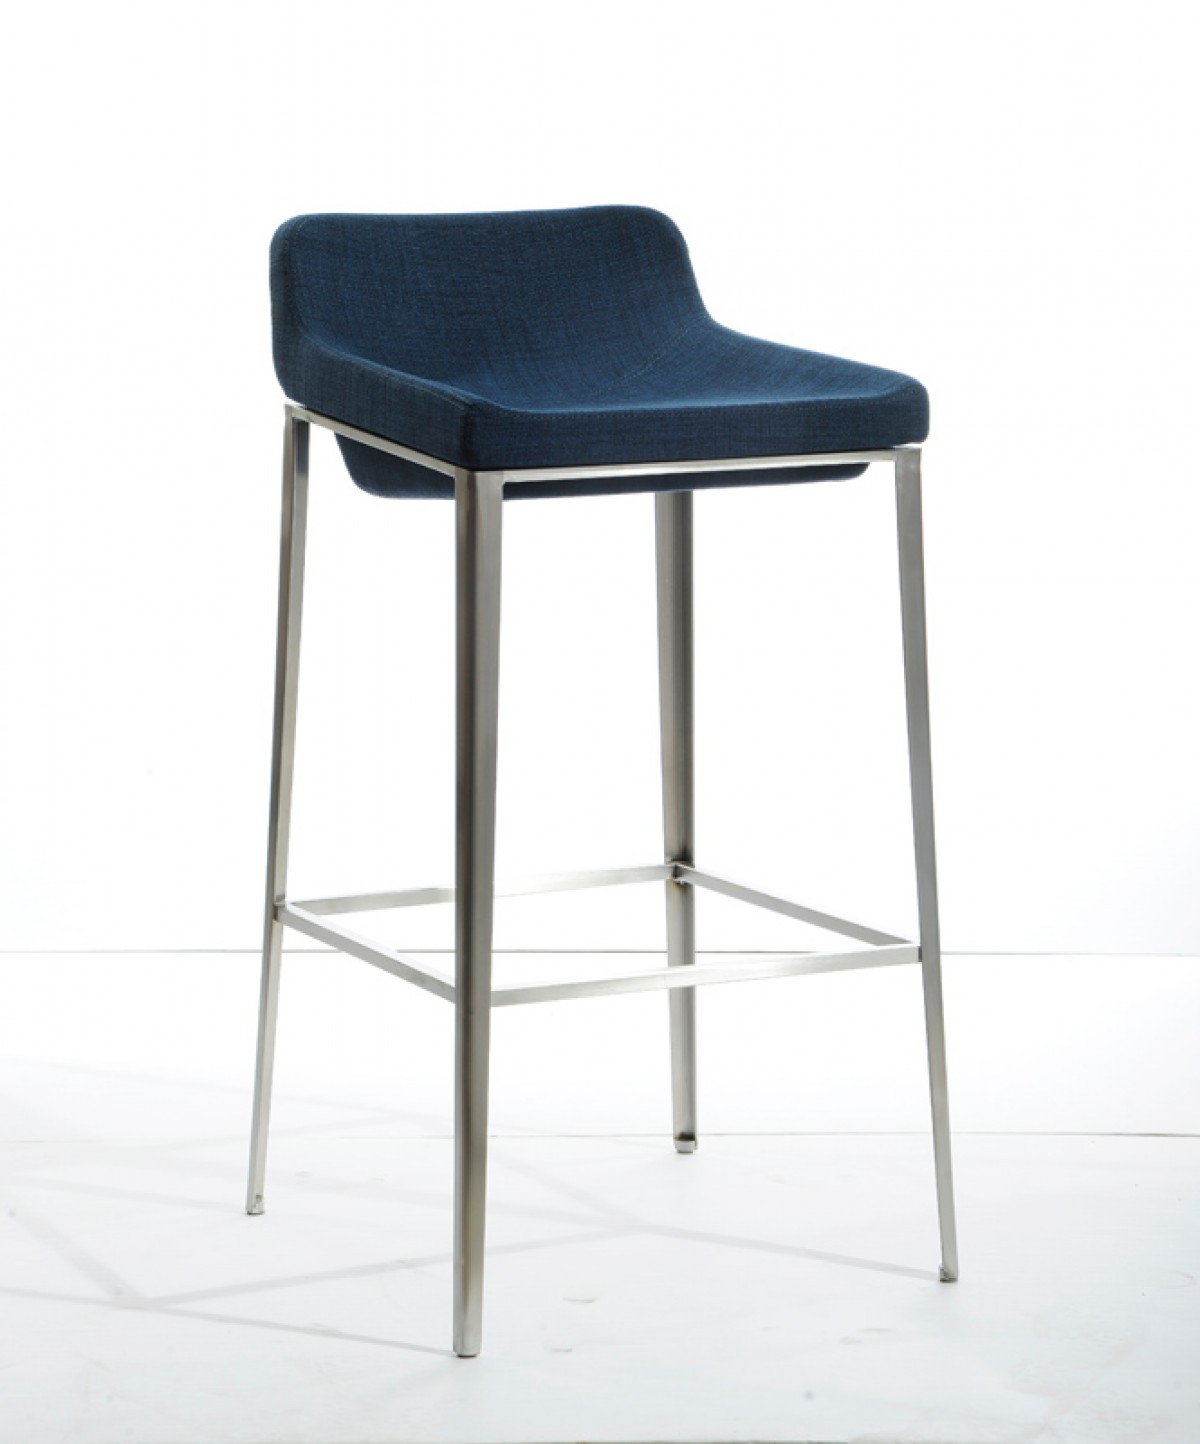 Modrest Adhil Modern Blue Fabric Bar Stool Bar Lounge